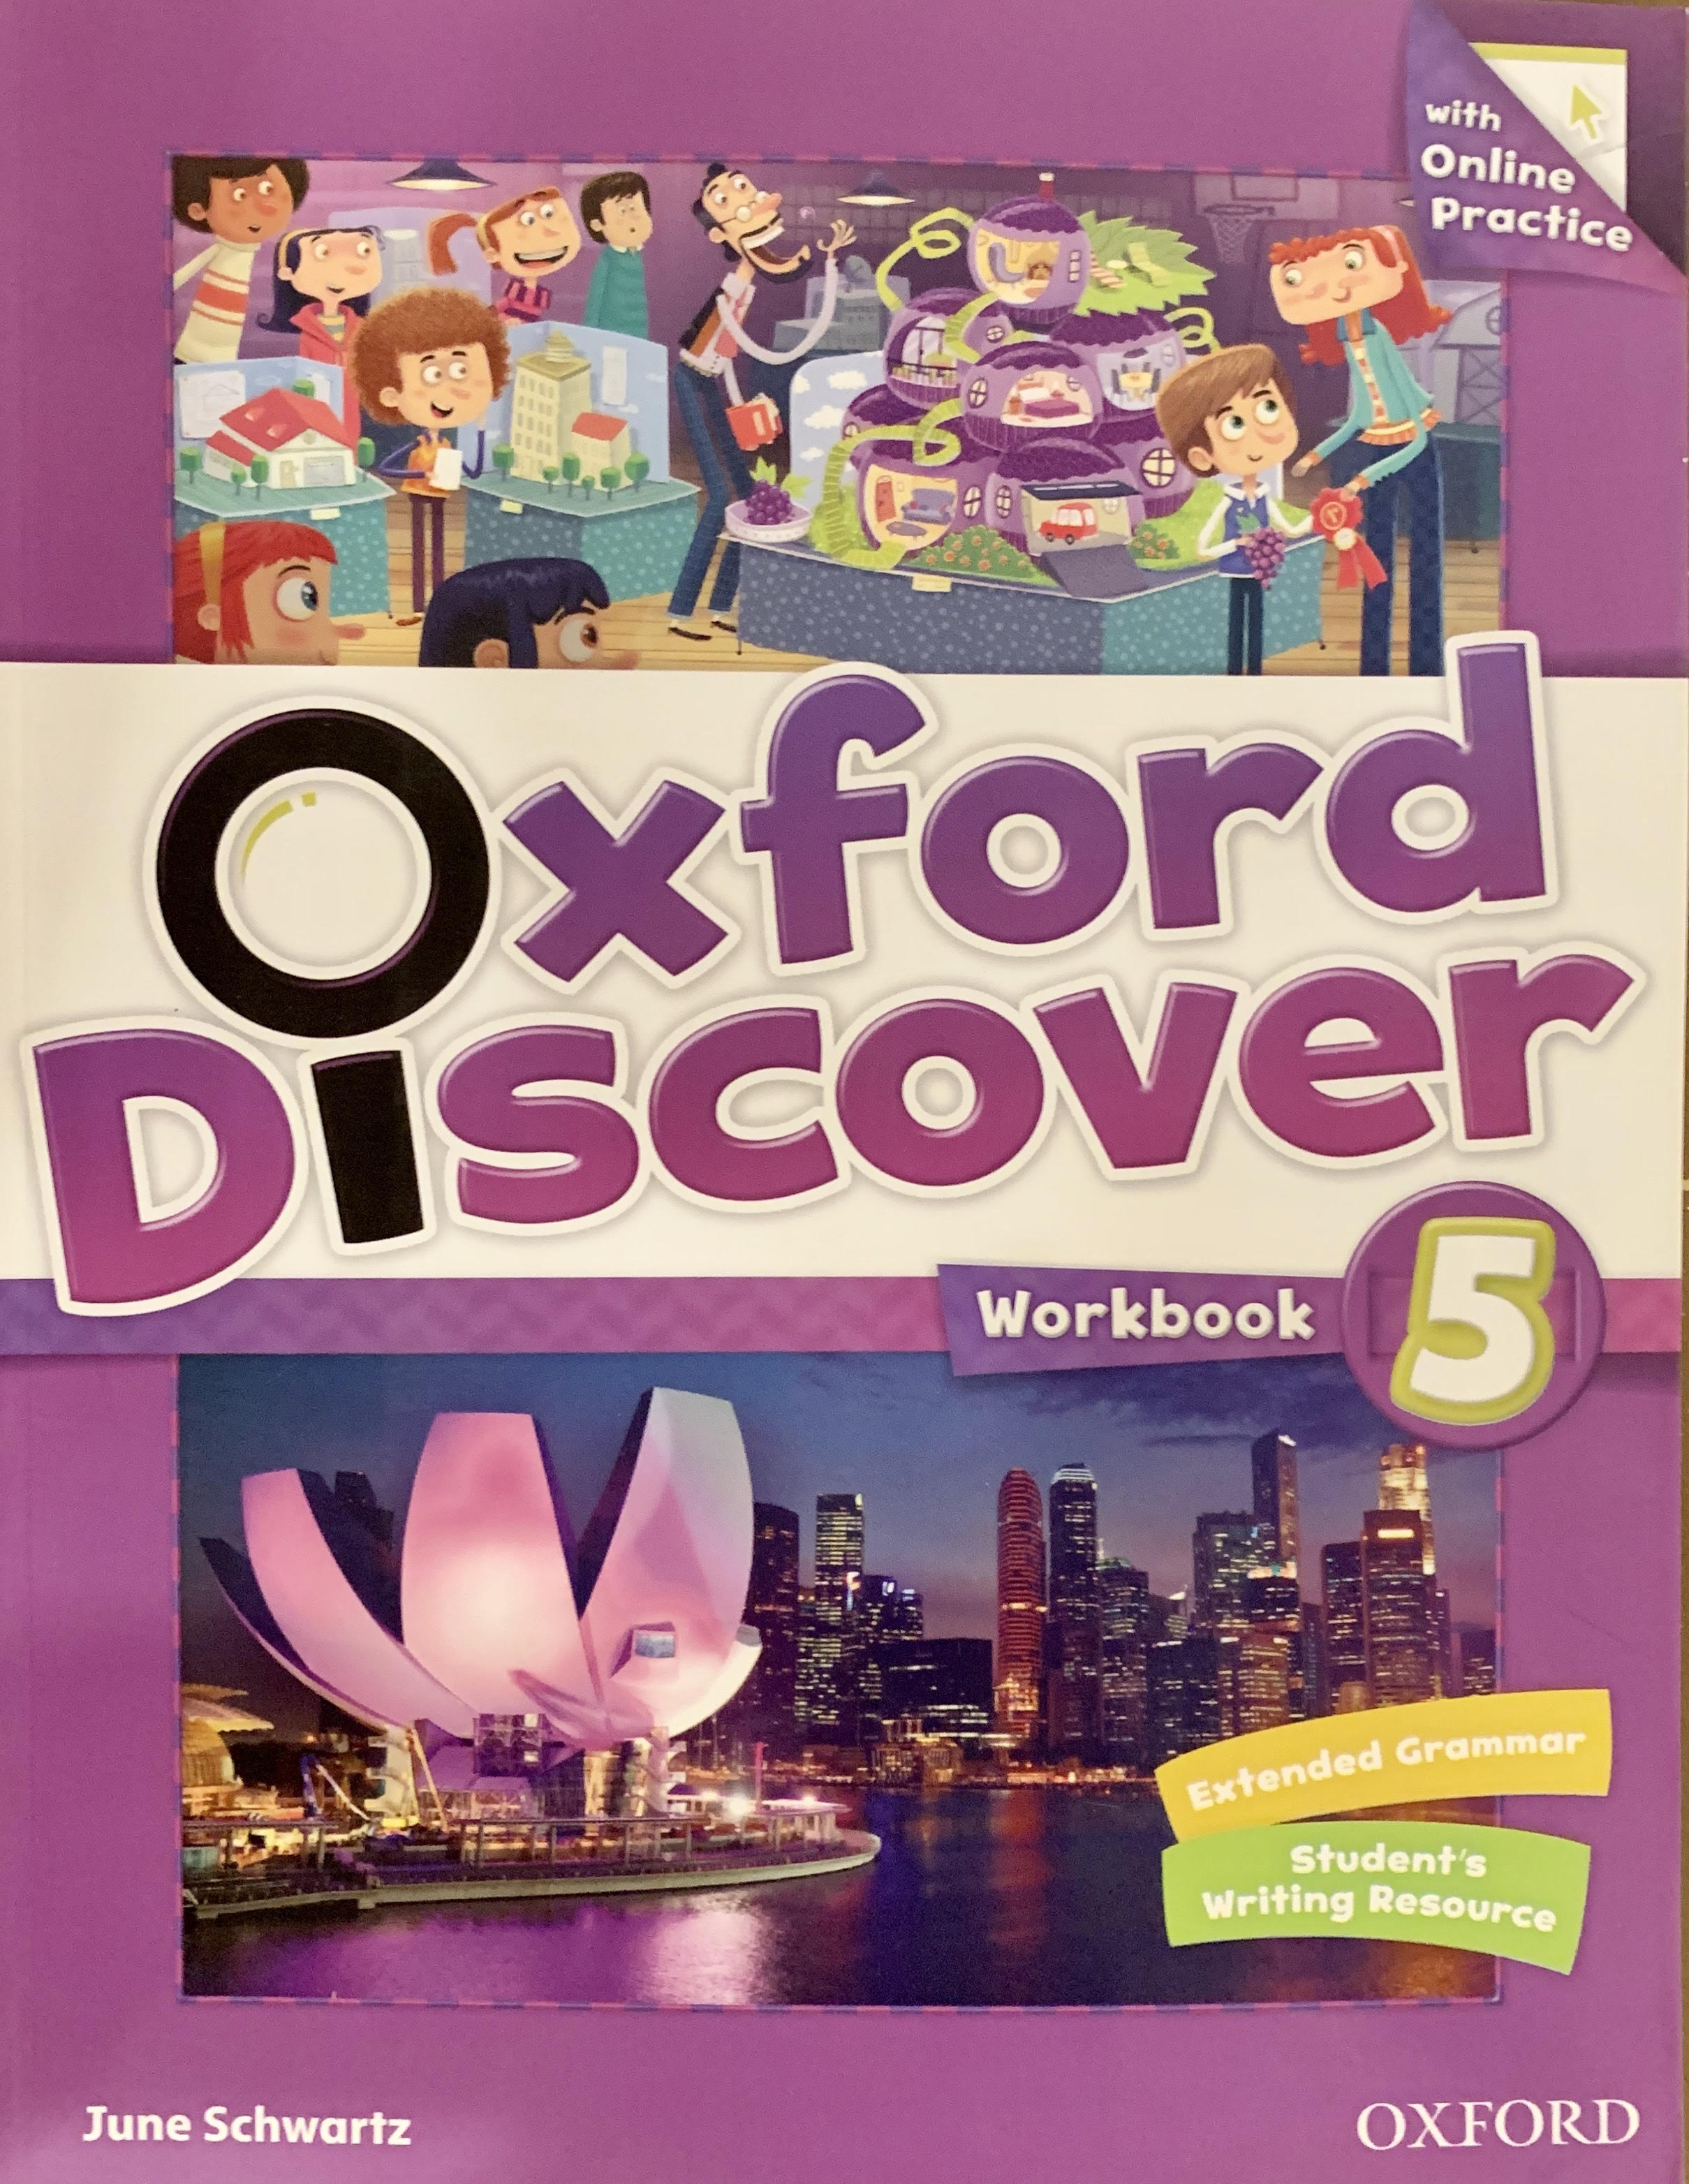 Oxford Discover Work 5